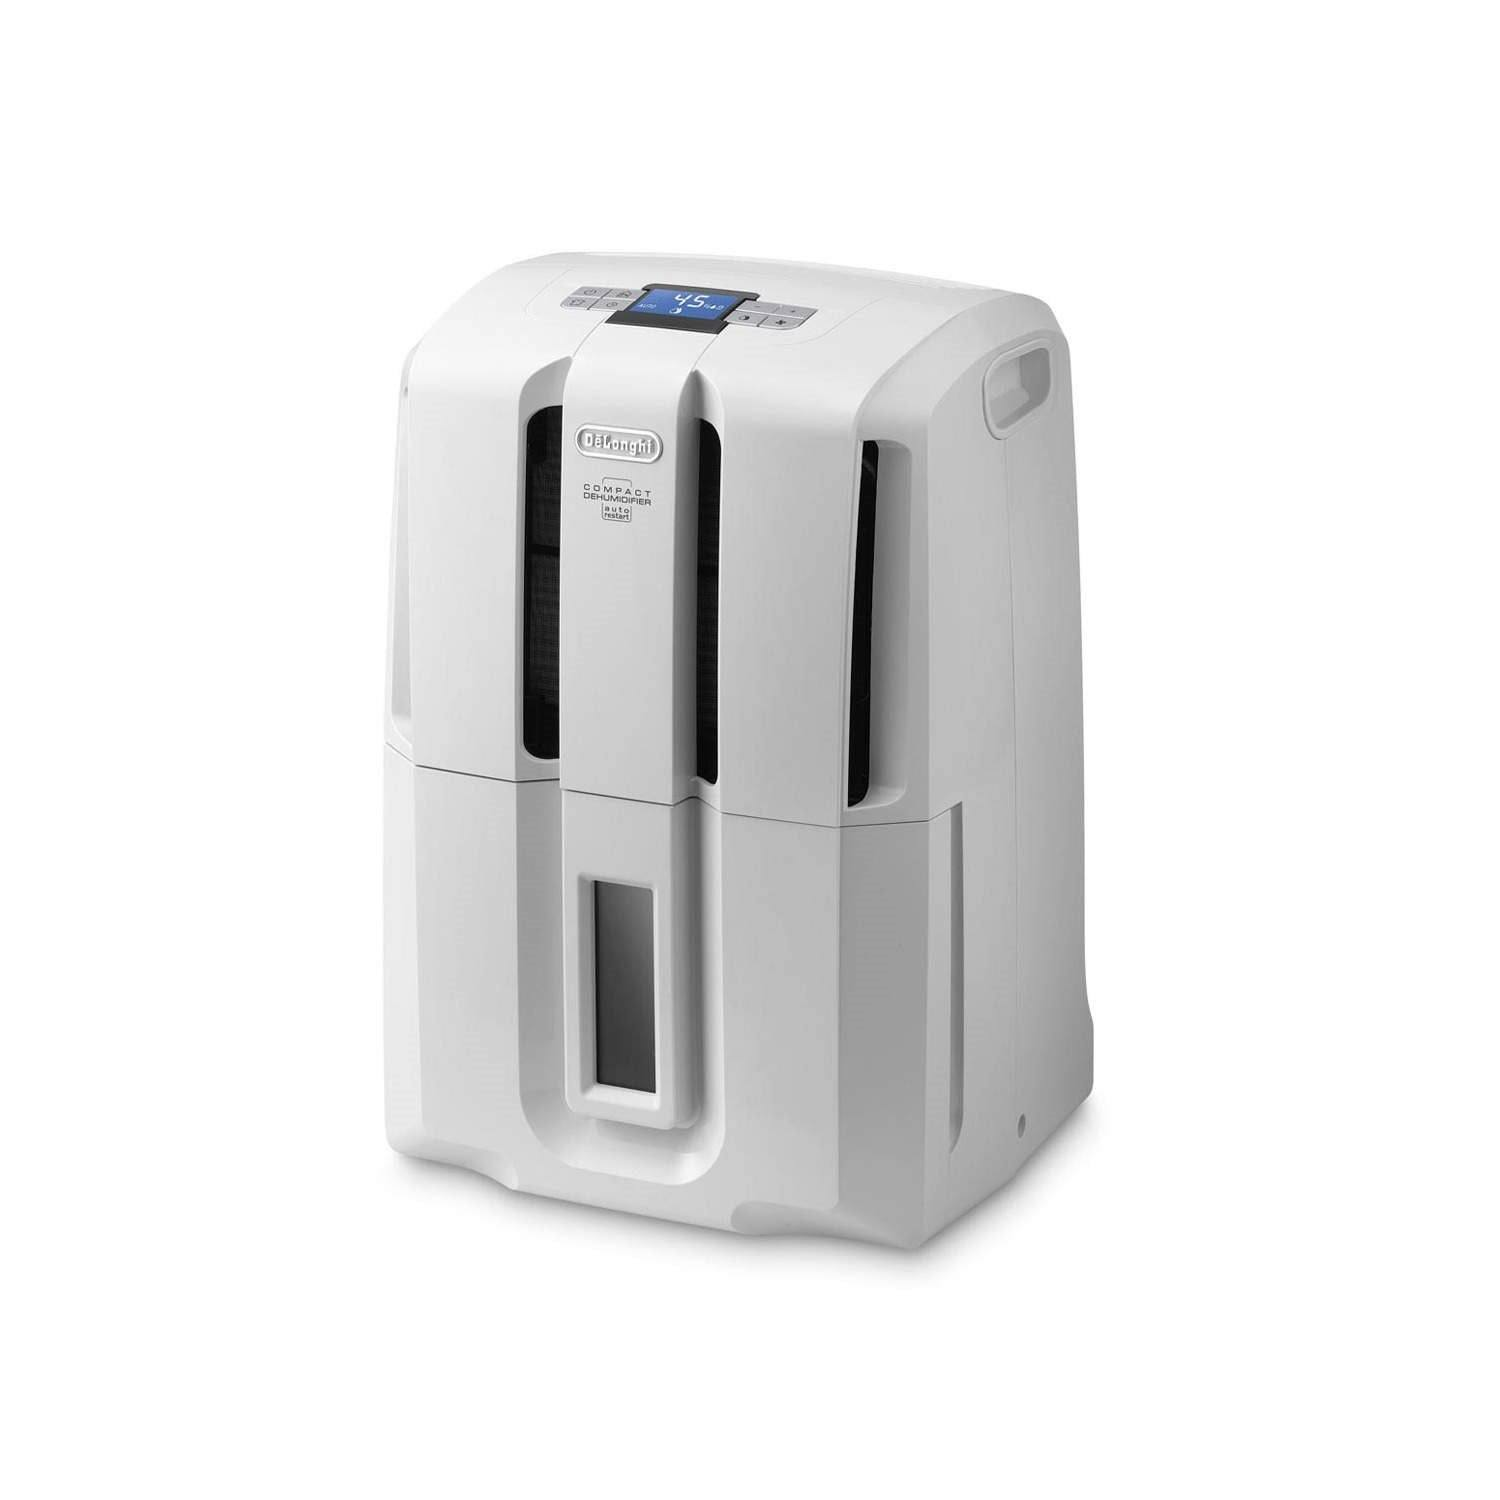 DeLonghi_DDS_30_deshumidificateur